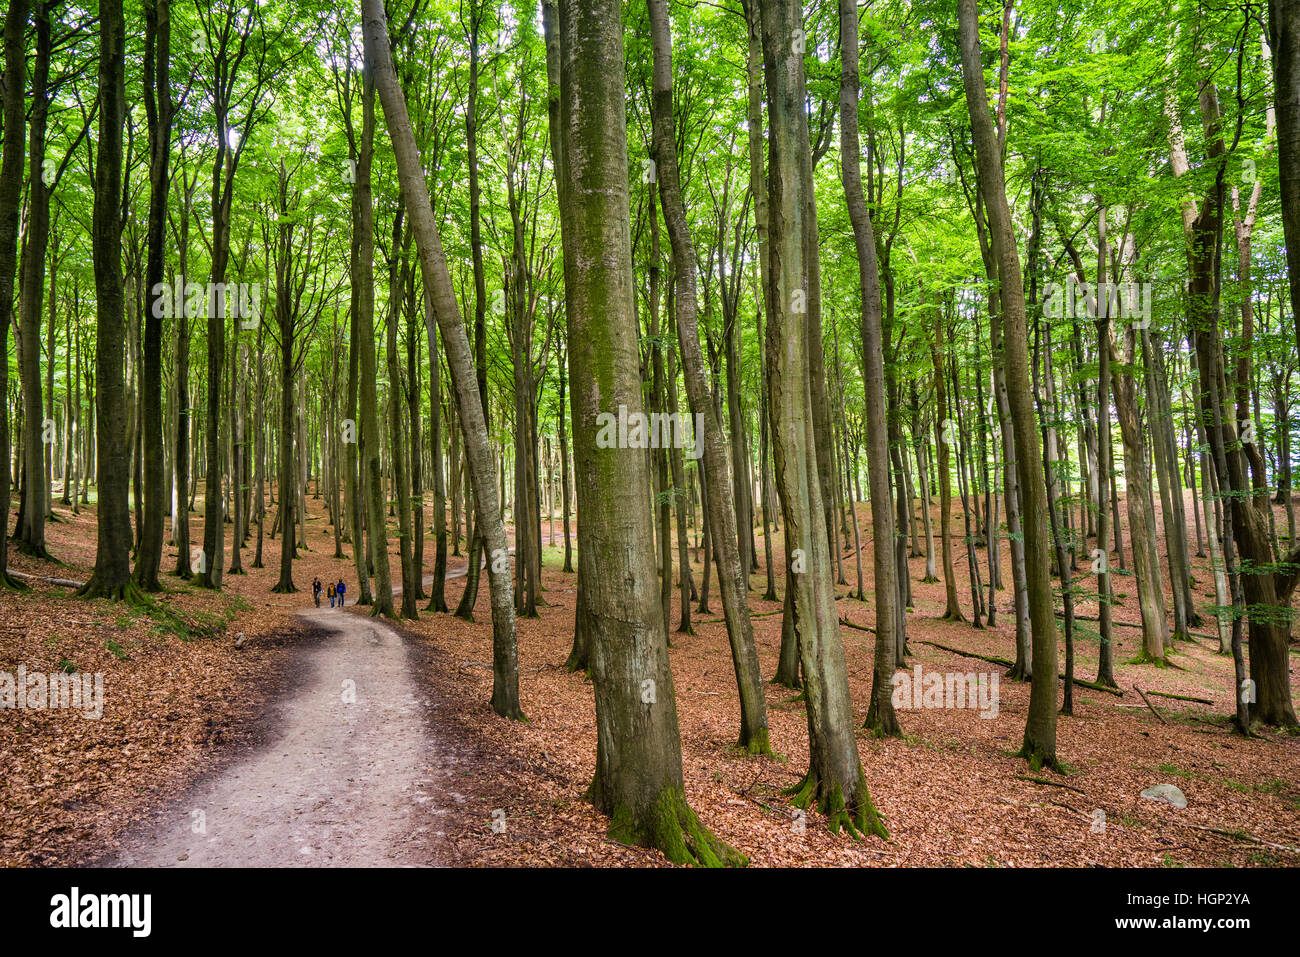 Primeeval Beech Forest at Jasmund National Park on the island of Rügen, Mecklenburg-Vorpommern, Germany - Stock Image